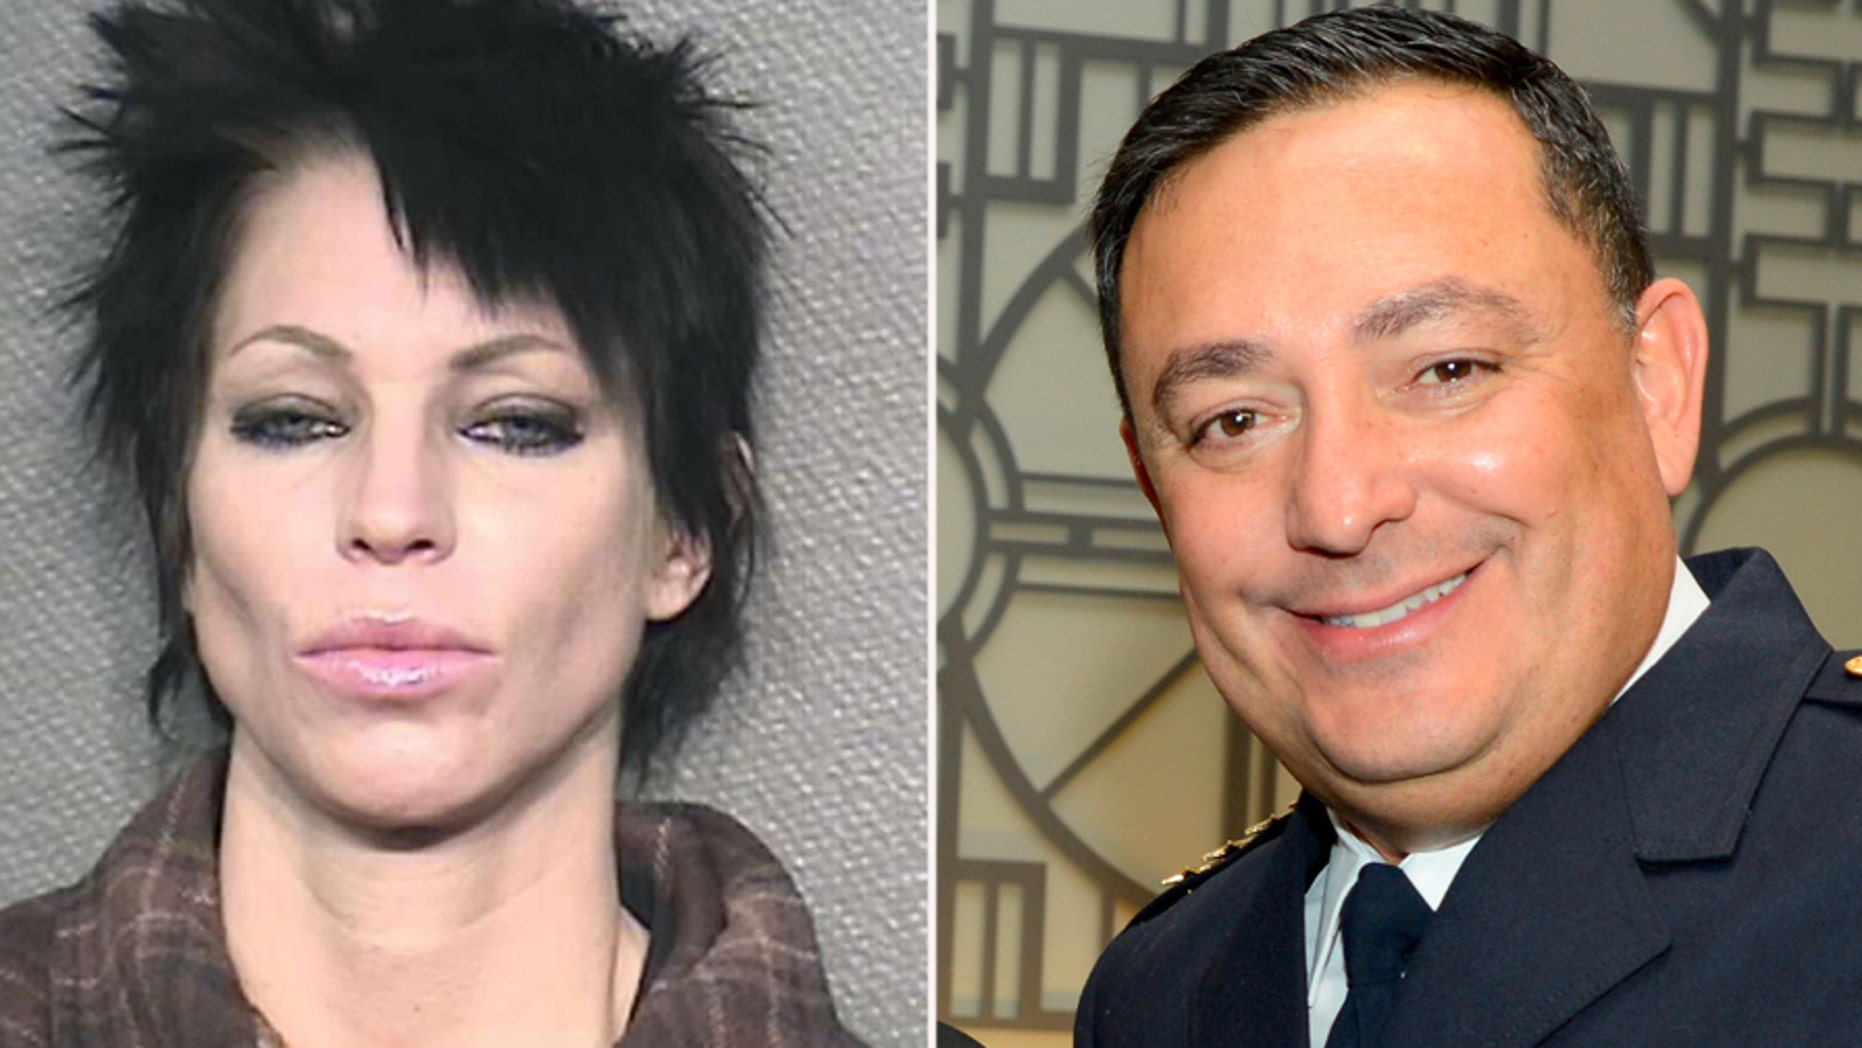 Danielle Paris, seen her in a mugshot for a different offense, was arrested after she allegedly spit in the face of Houston Police Chief Art Acevedo.